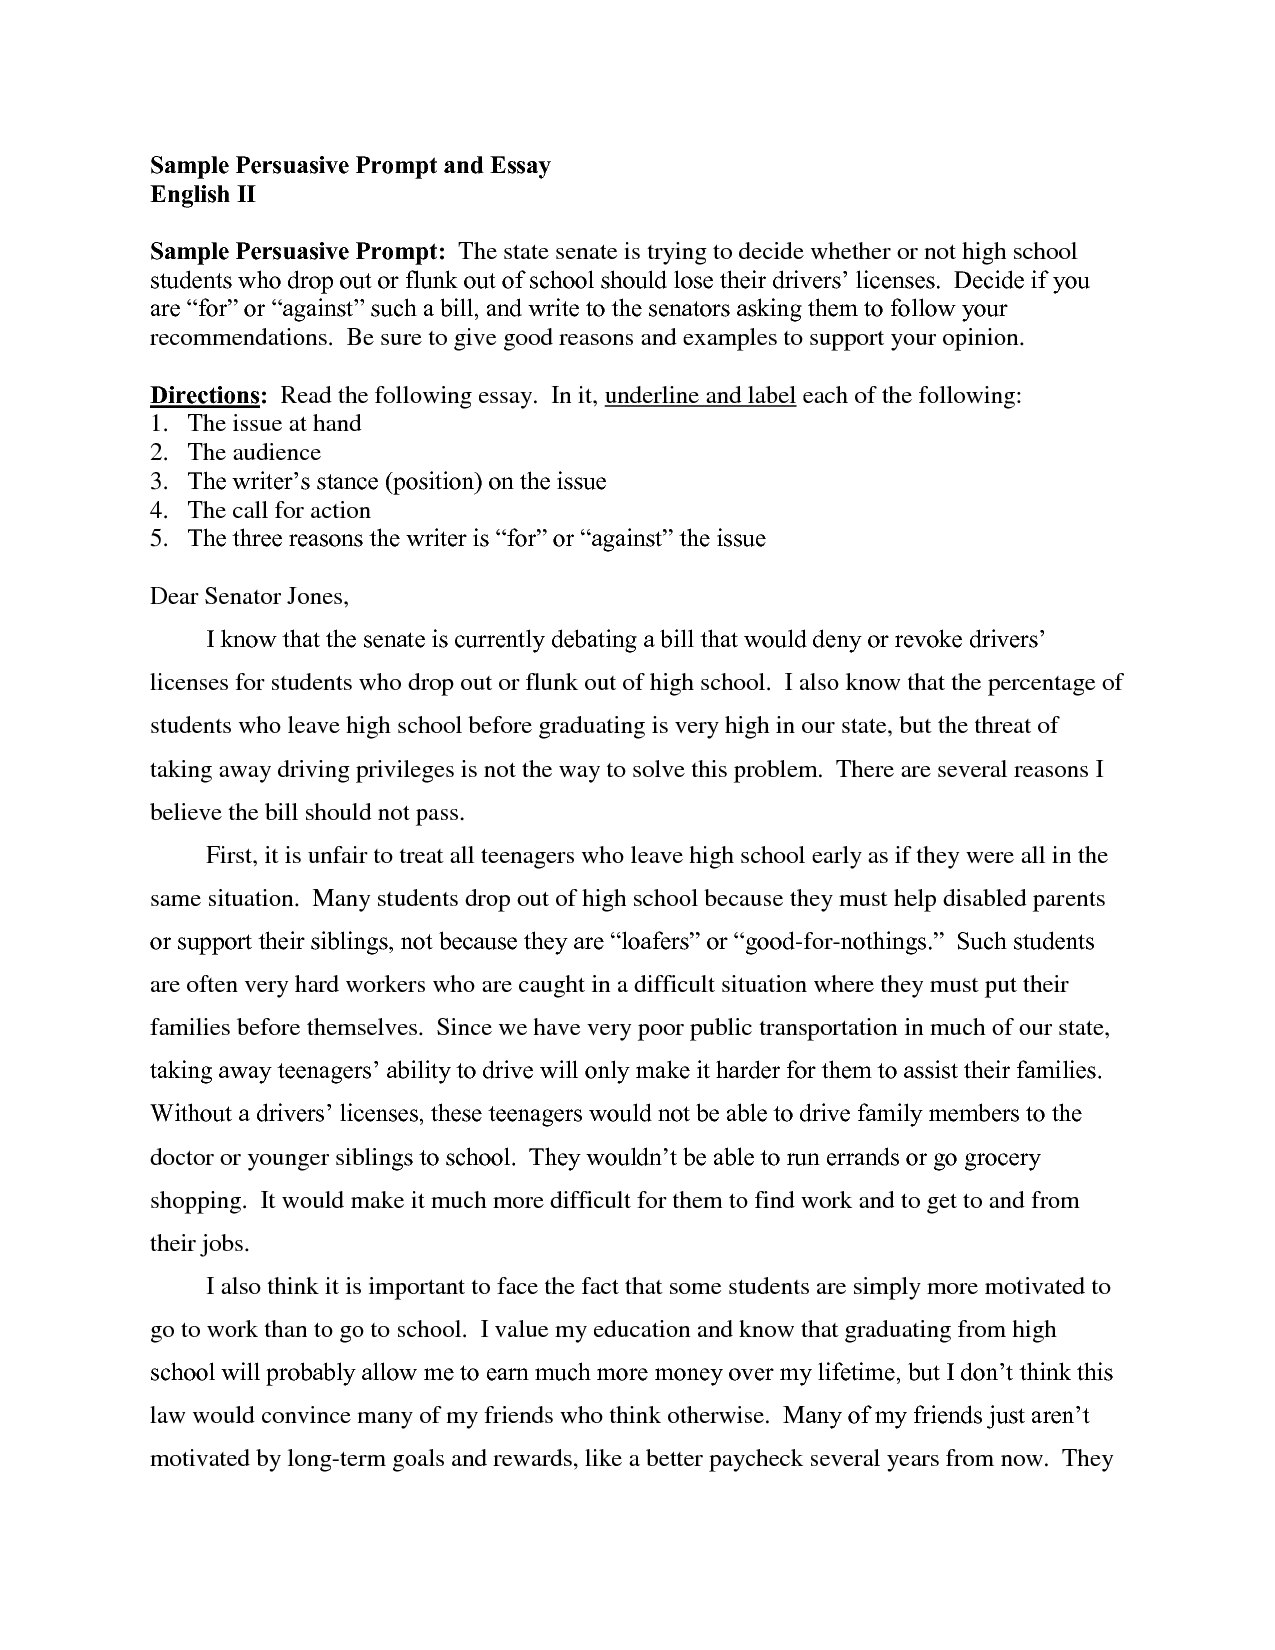 006 Persuasive Essay Topics For High School Sample Ideas Highschool Students Good Prompt Funny Easy Fun List Of Seniors Writing English Free How To Write Research Paper Stirring A Pdf Full